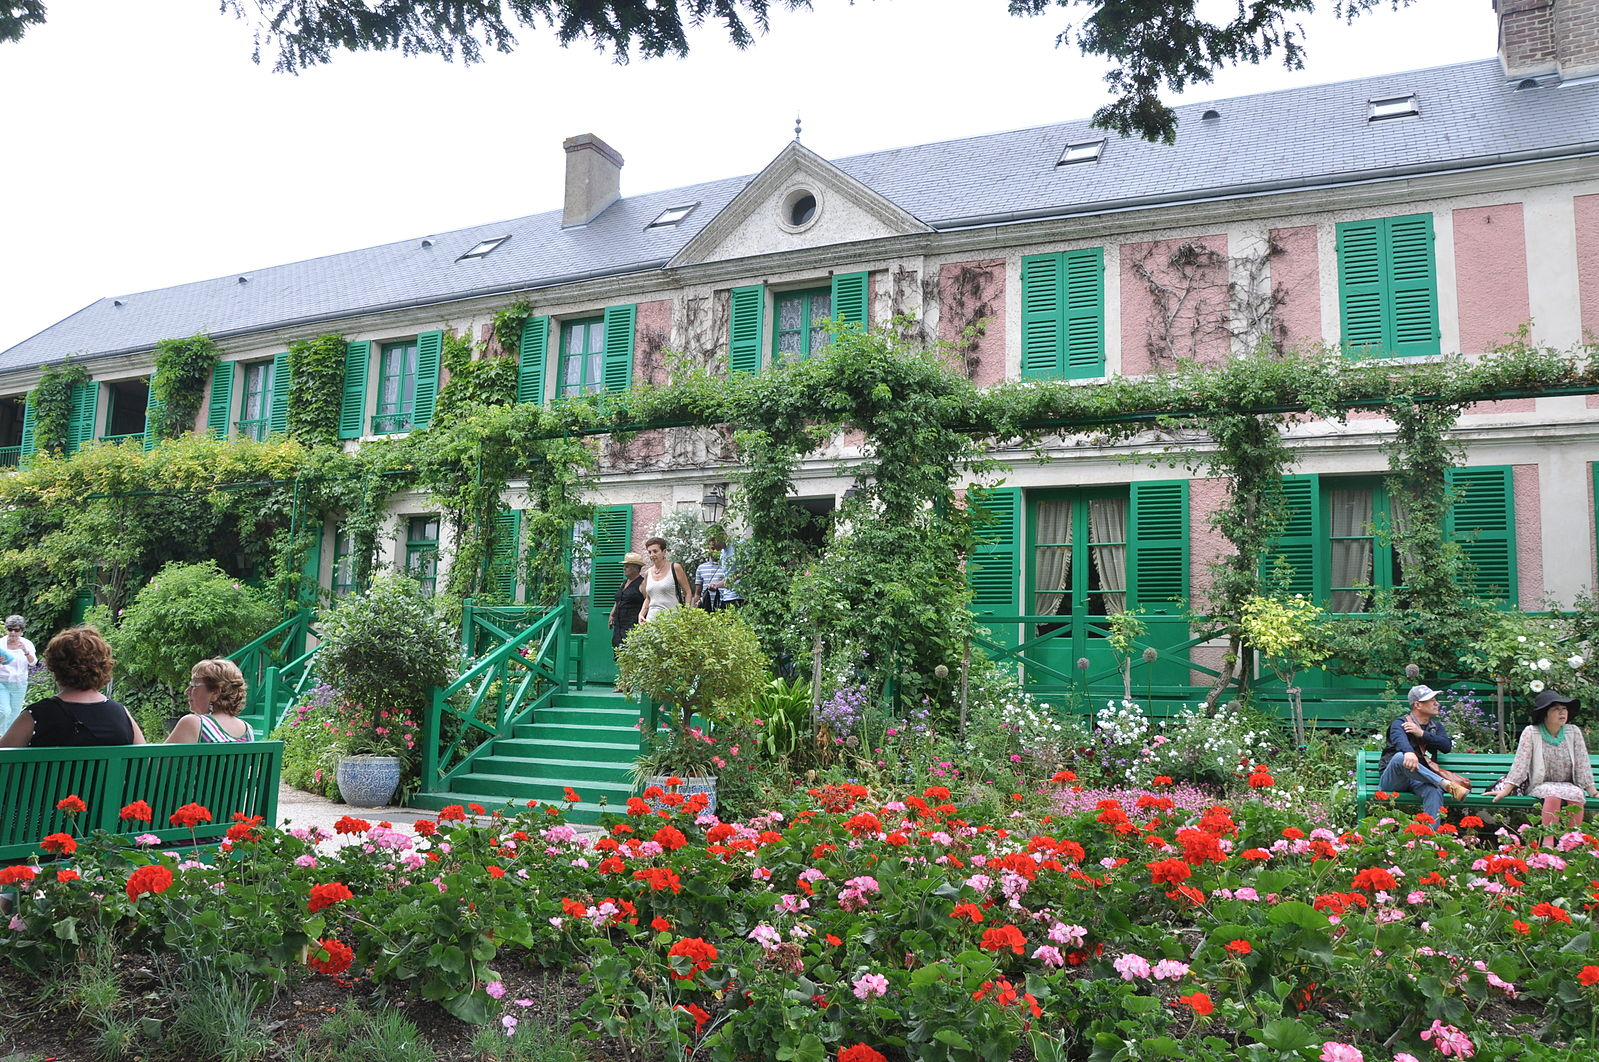 The home of Claude Monet in Giverny, France.